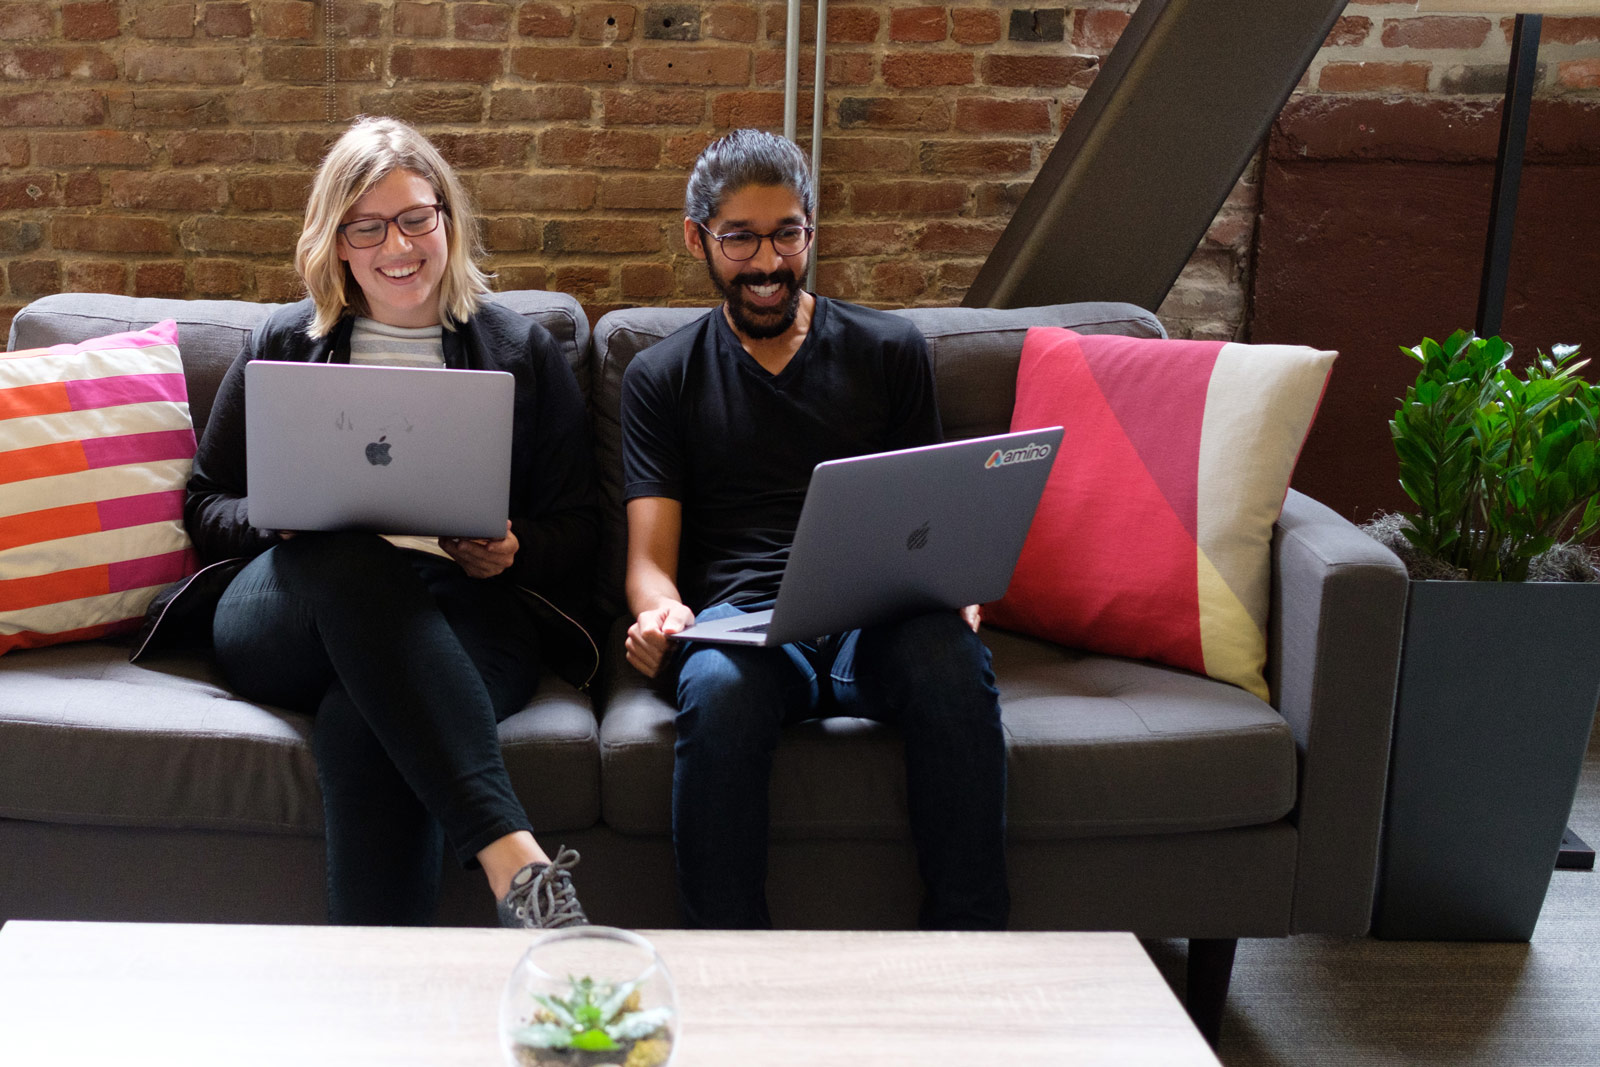 Amino teammates collaborating with laptops on a couch